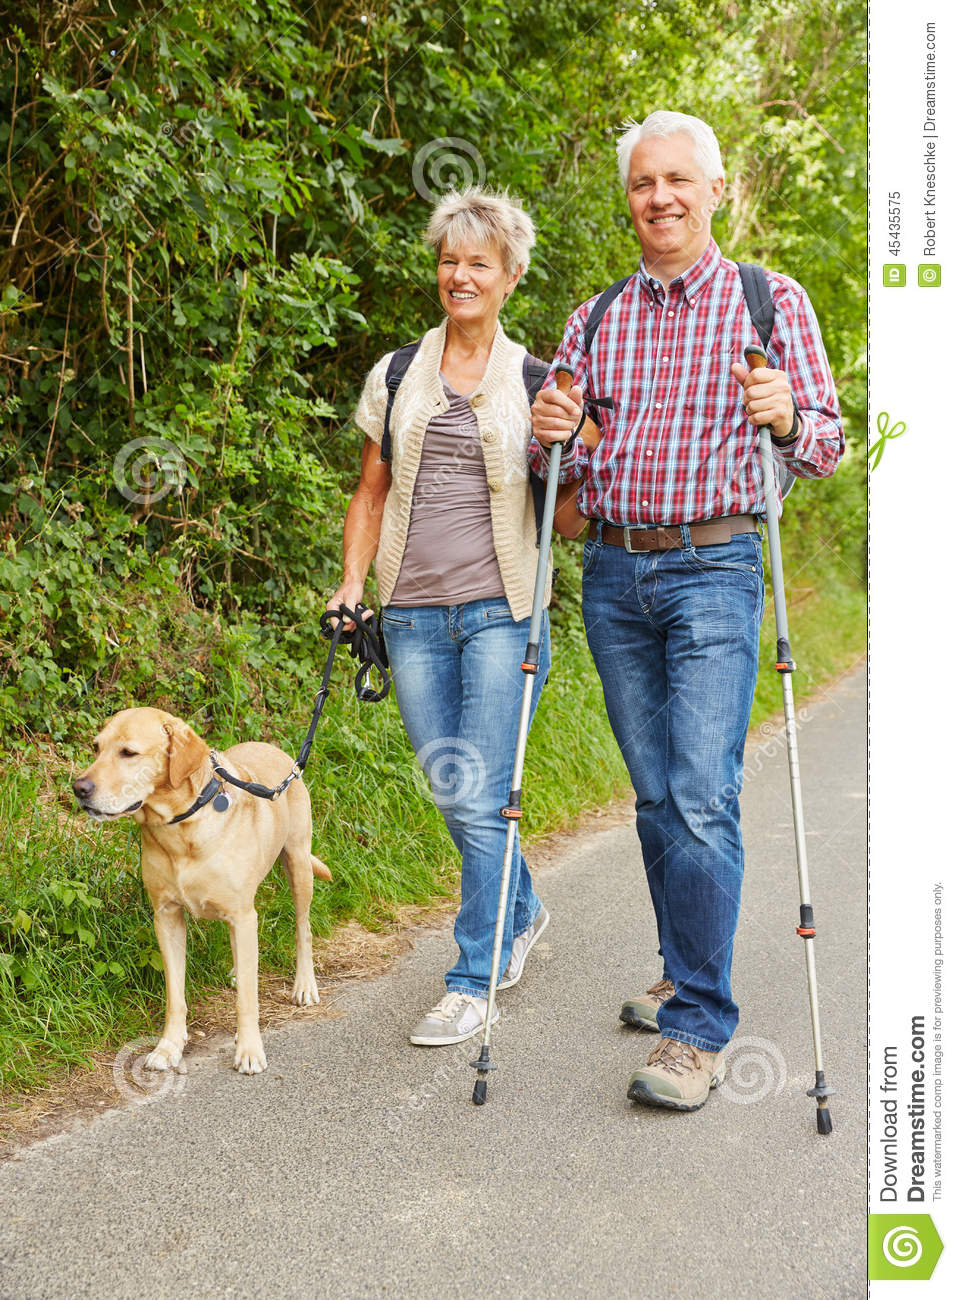 Best Dog For Middle Aged Couple